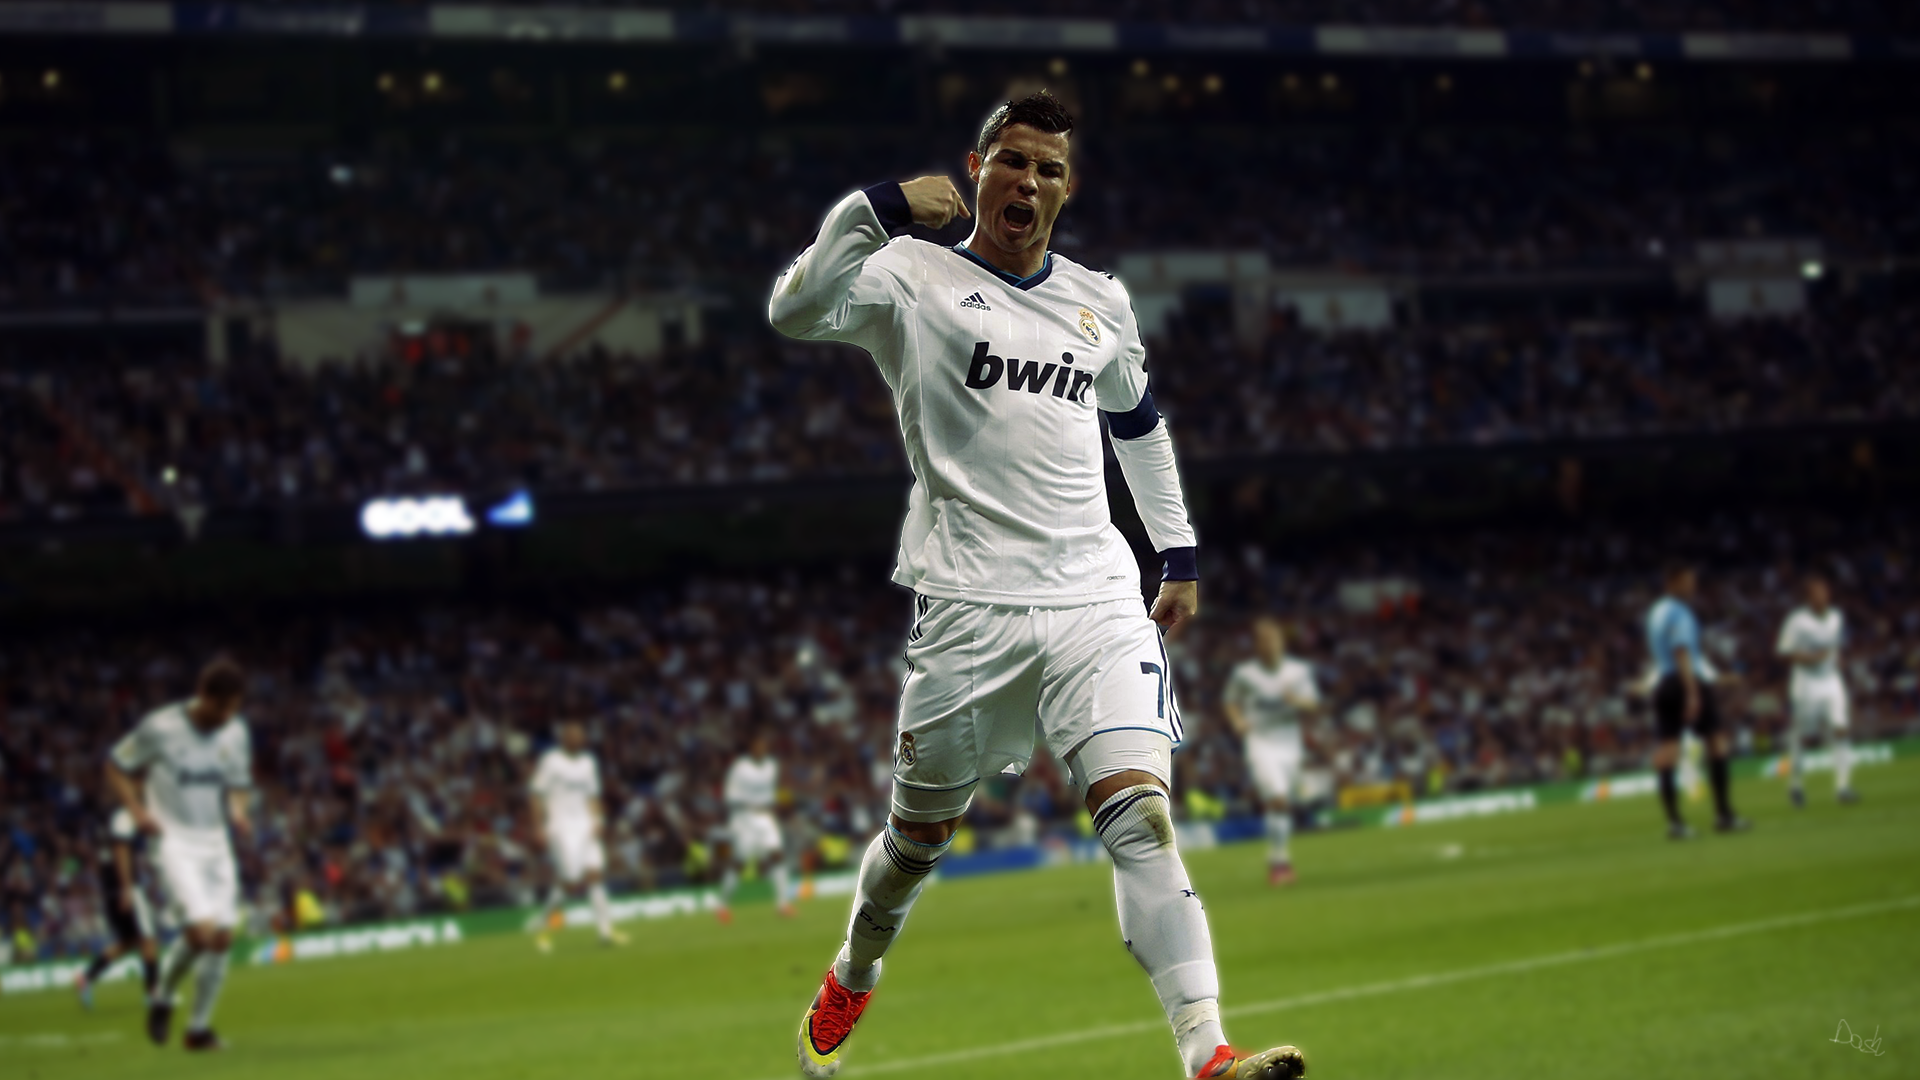 Sports - Cristiano Ronaldo  Portuguese Soccer Real Madrid C.F. Wallpaper